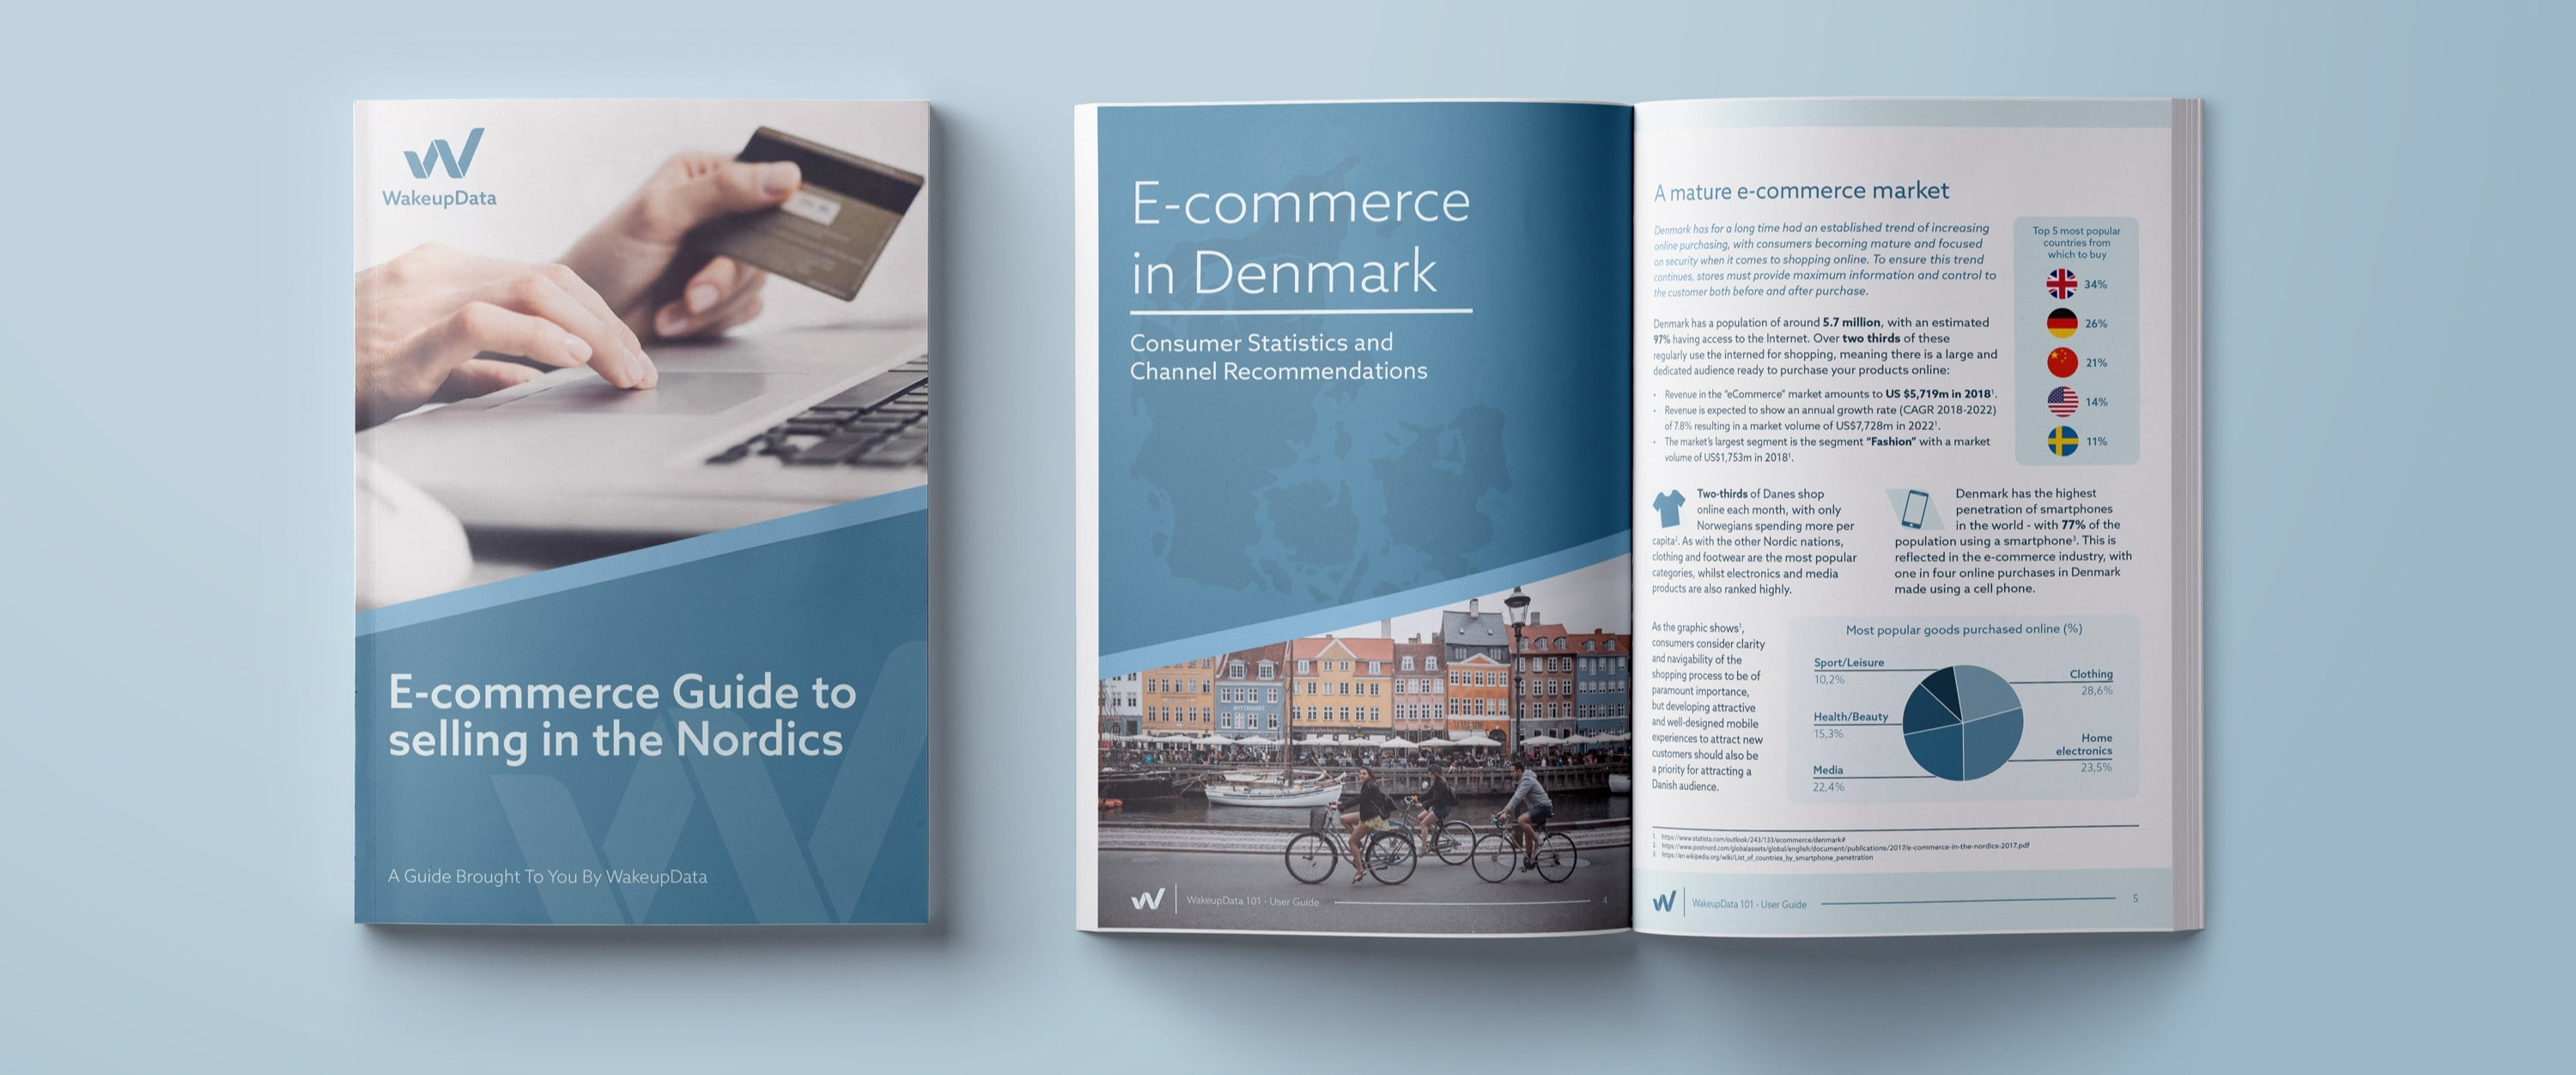 What does the future look like for ecommerce in Denmark?